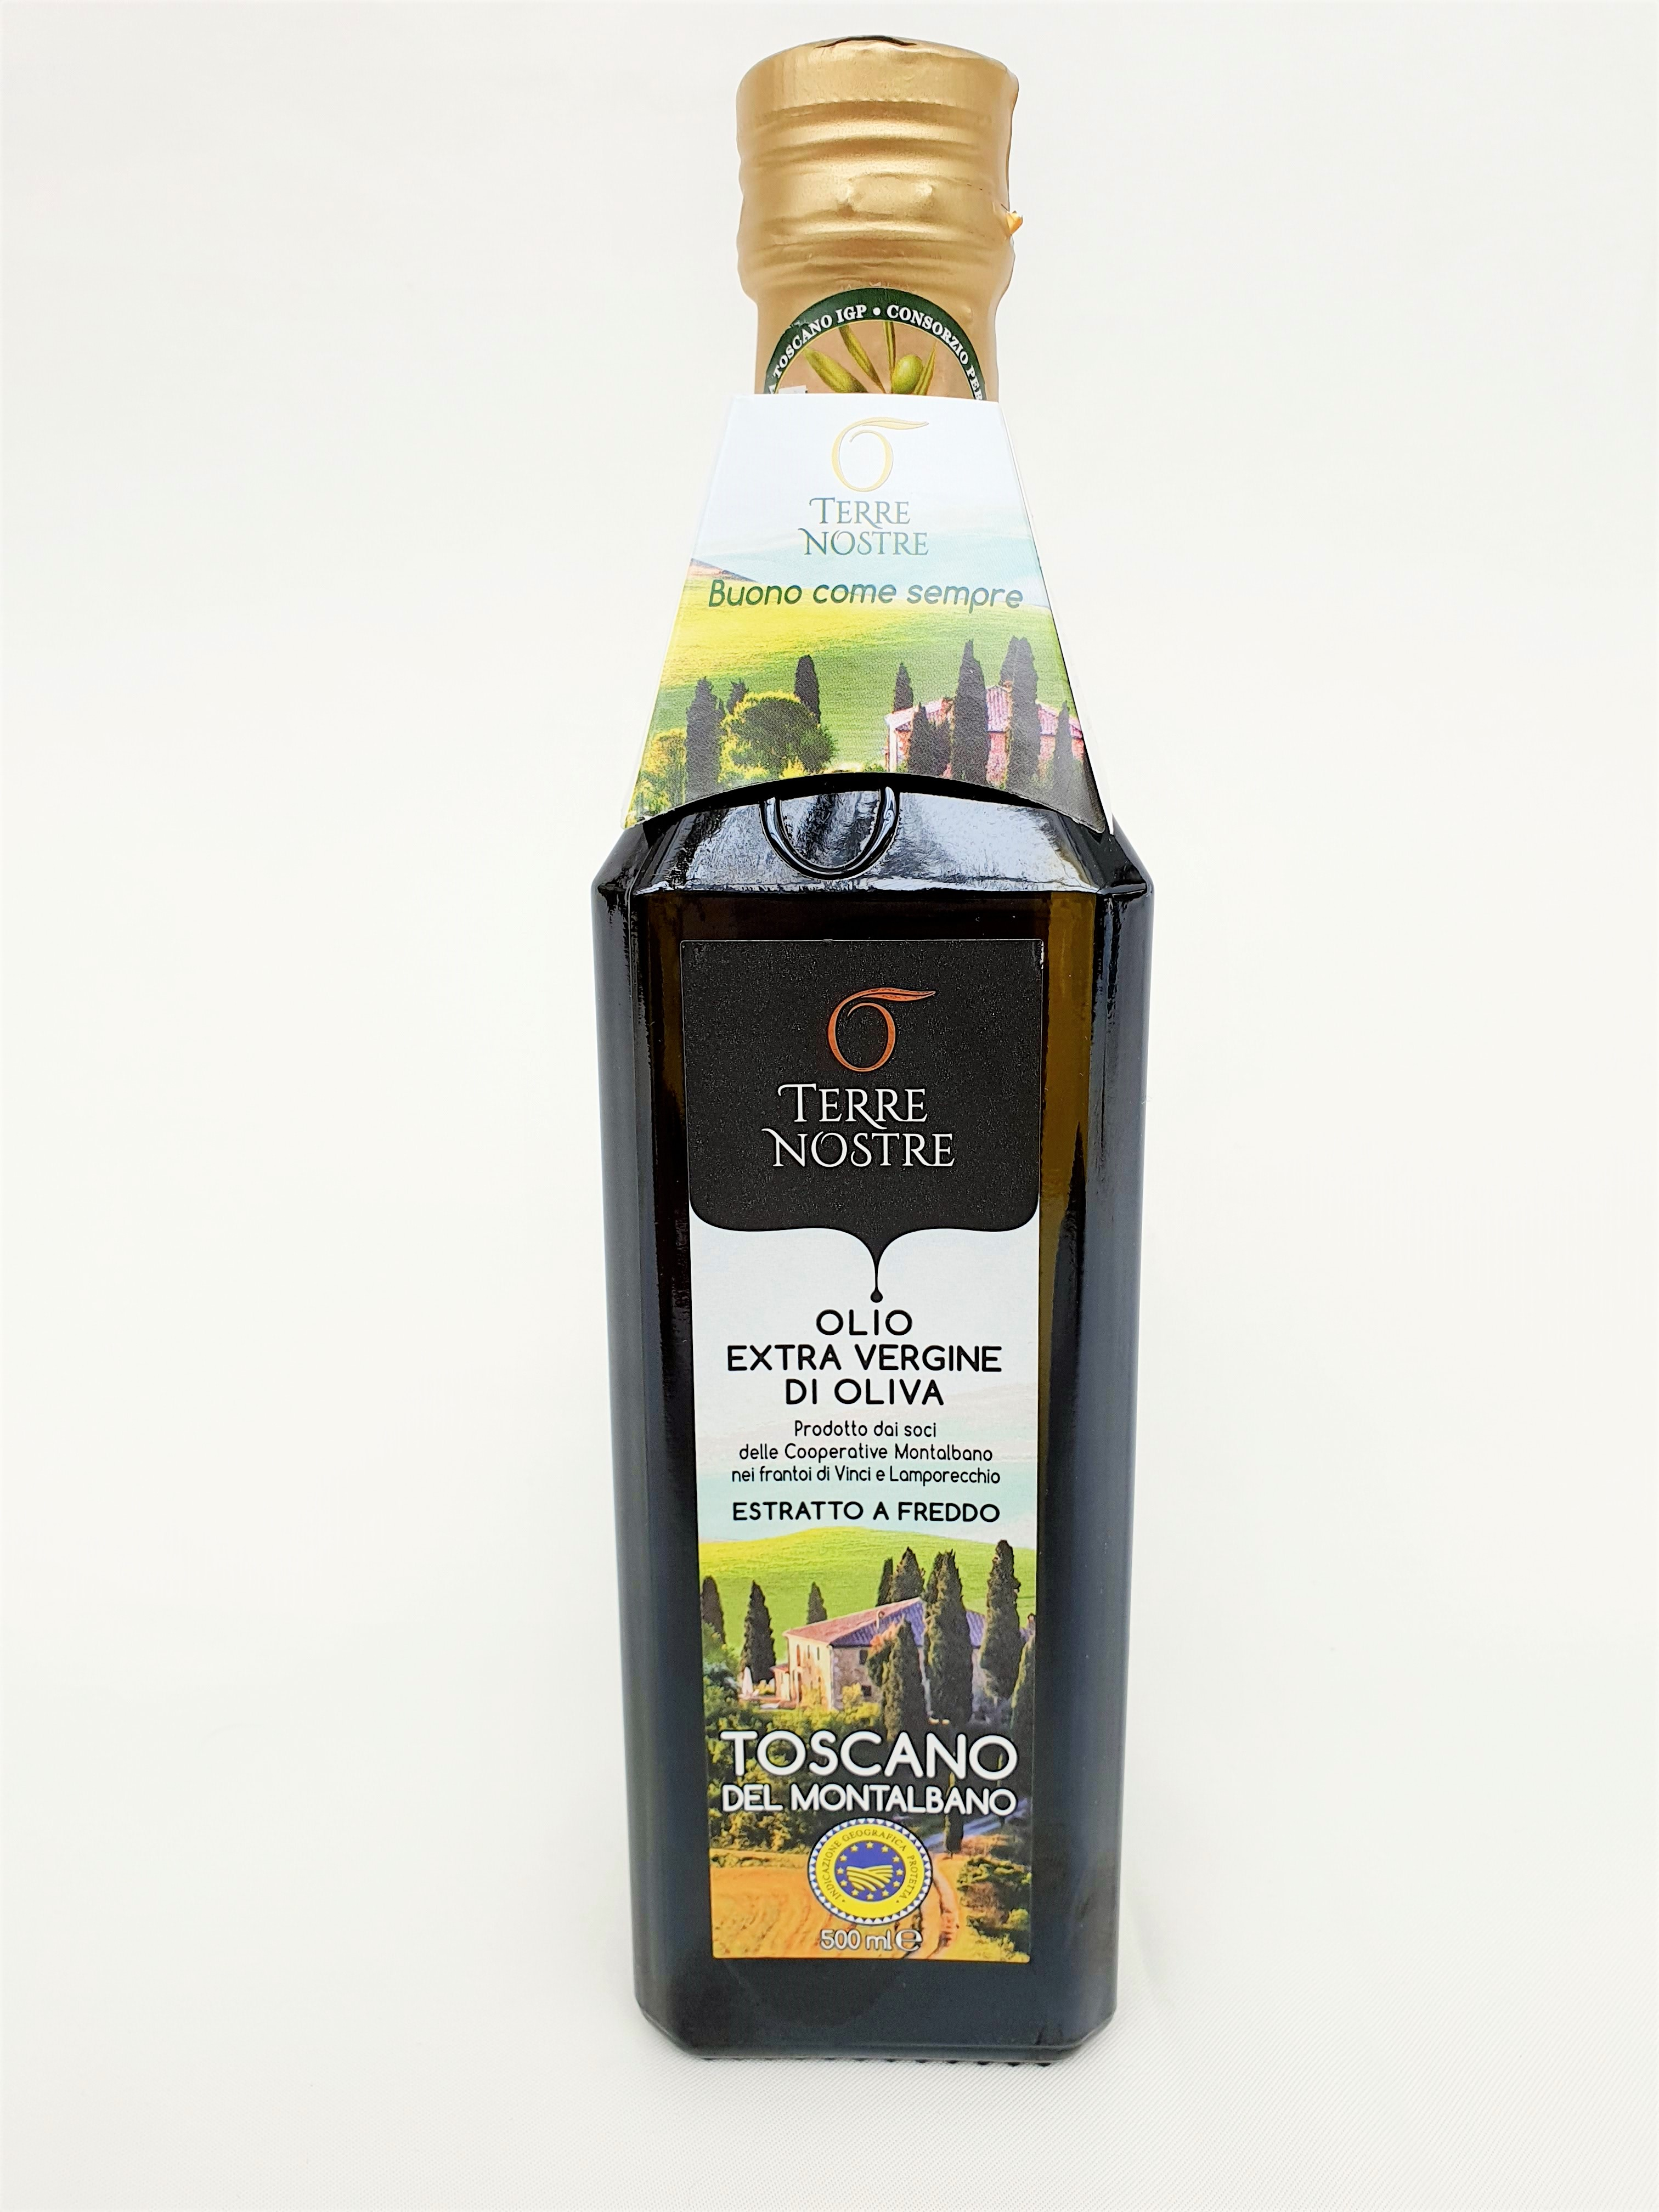 Montalbano Tuscan Extra Virgin Olive Oil 500ml *save £2*